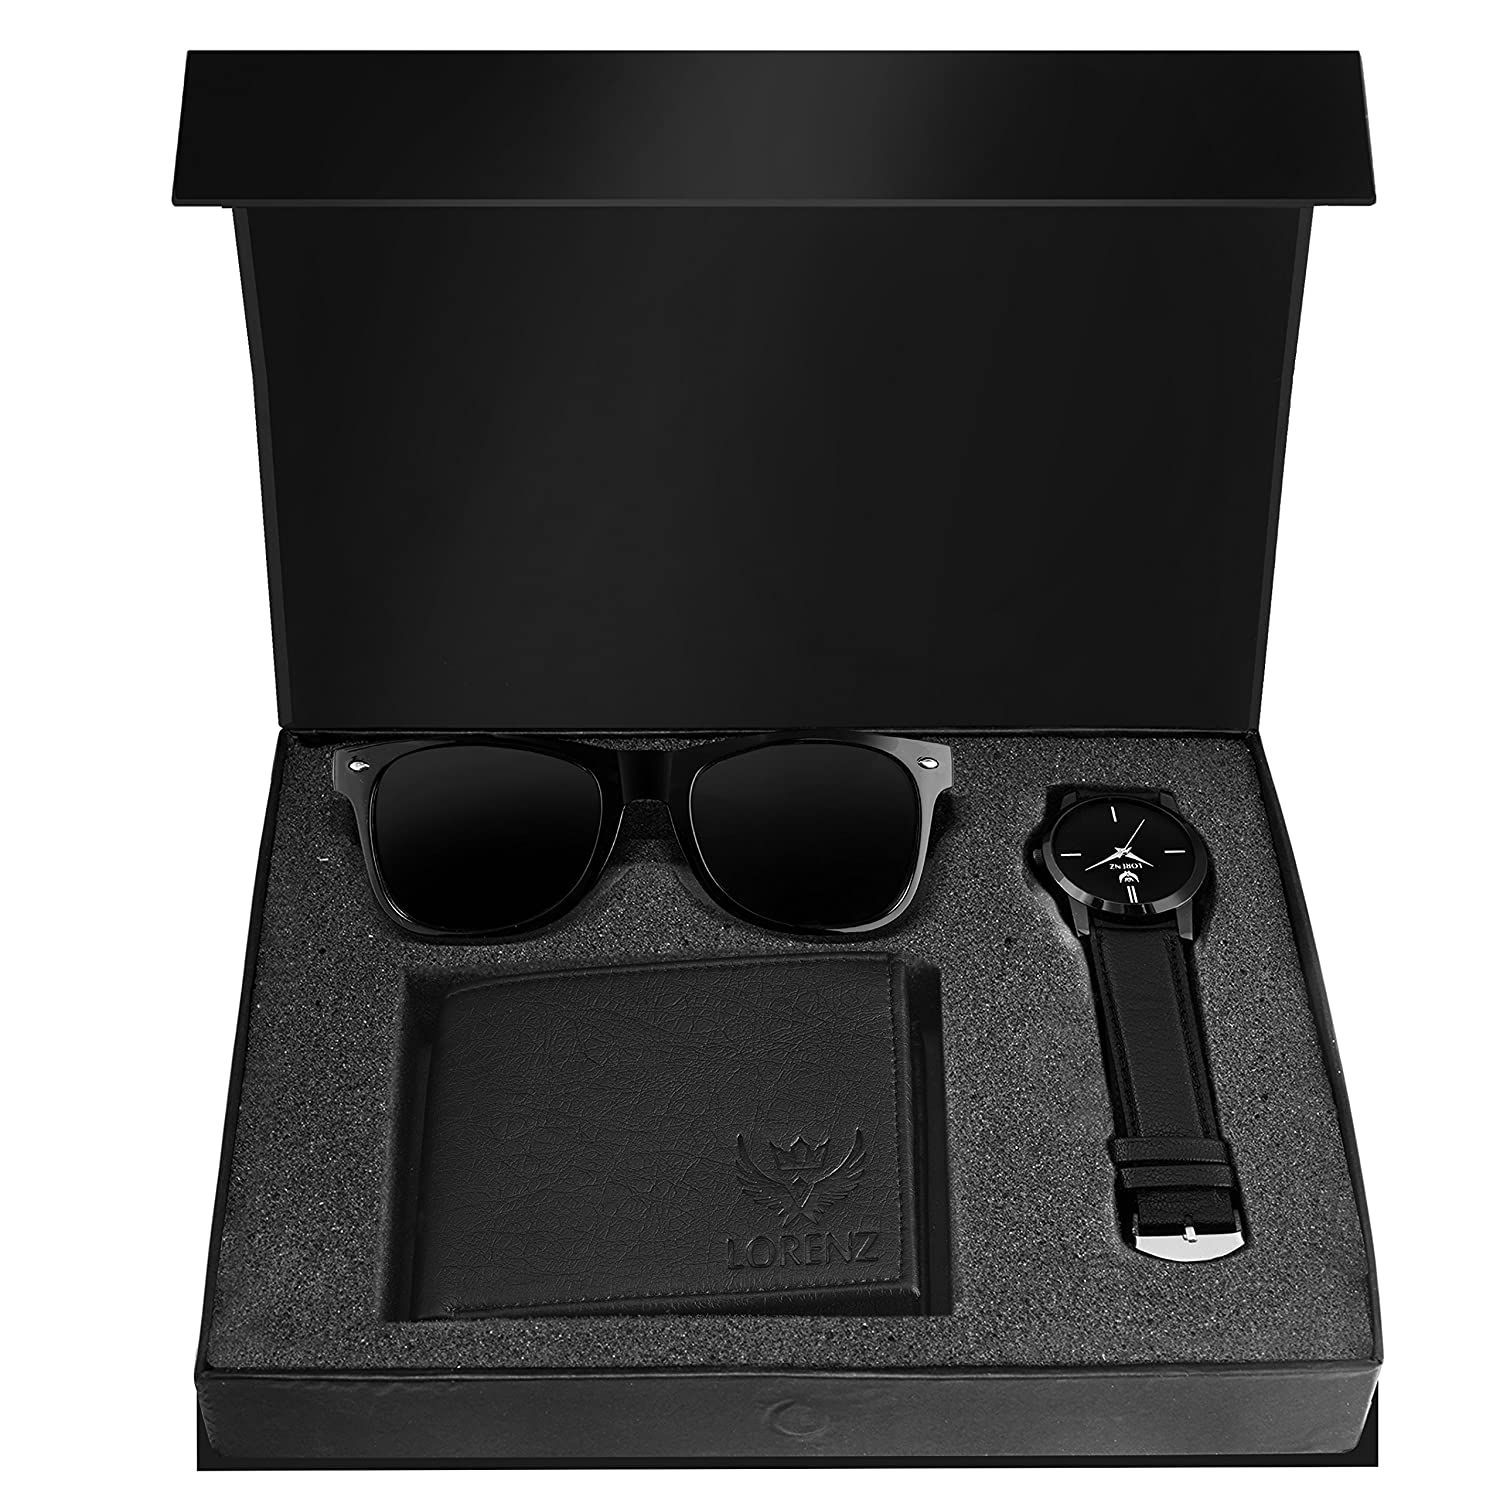 LORENZ Combo Of Black Men's Wallet,Sunglasses & Black Dial Watch